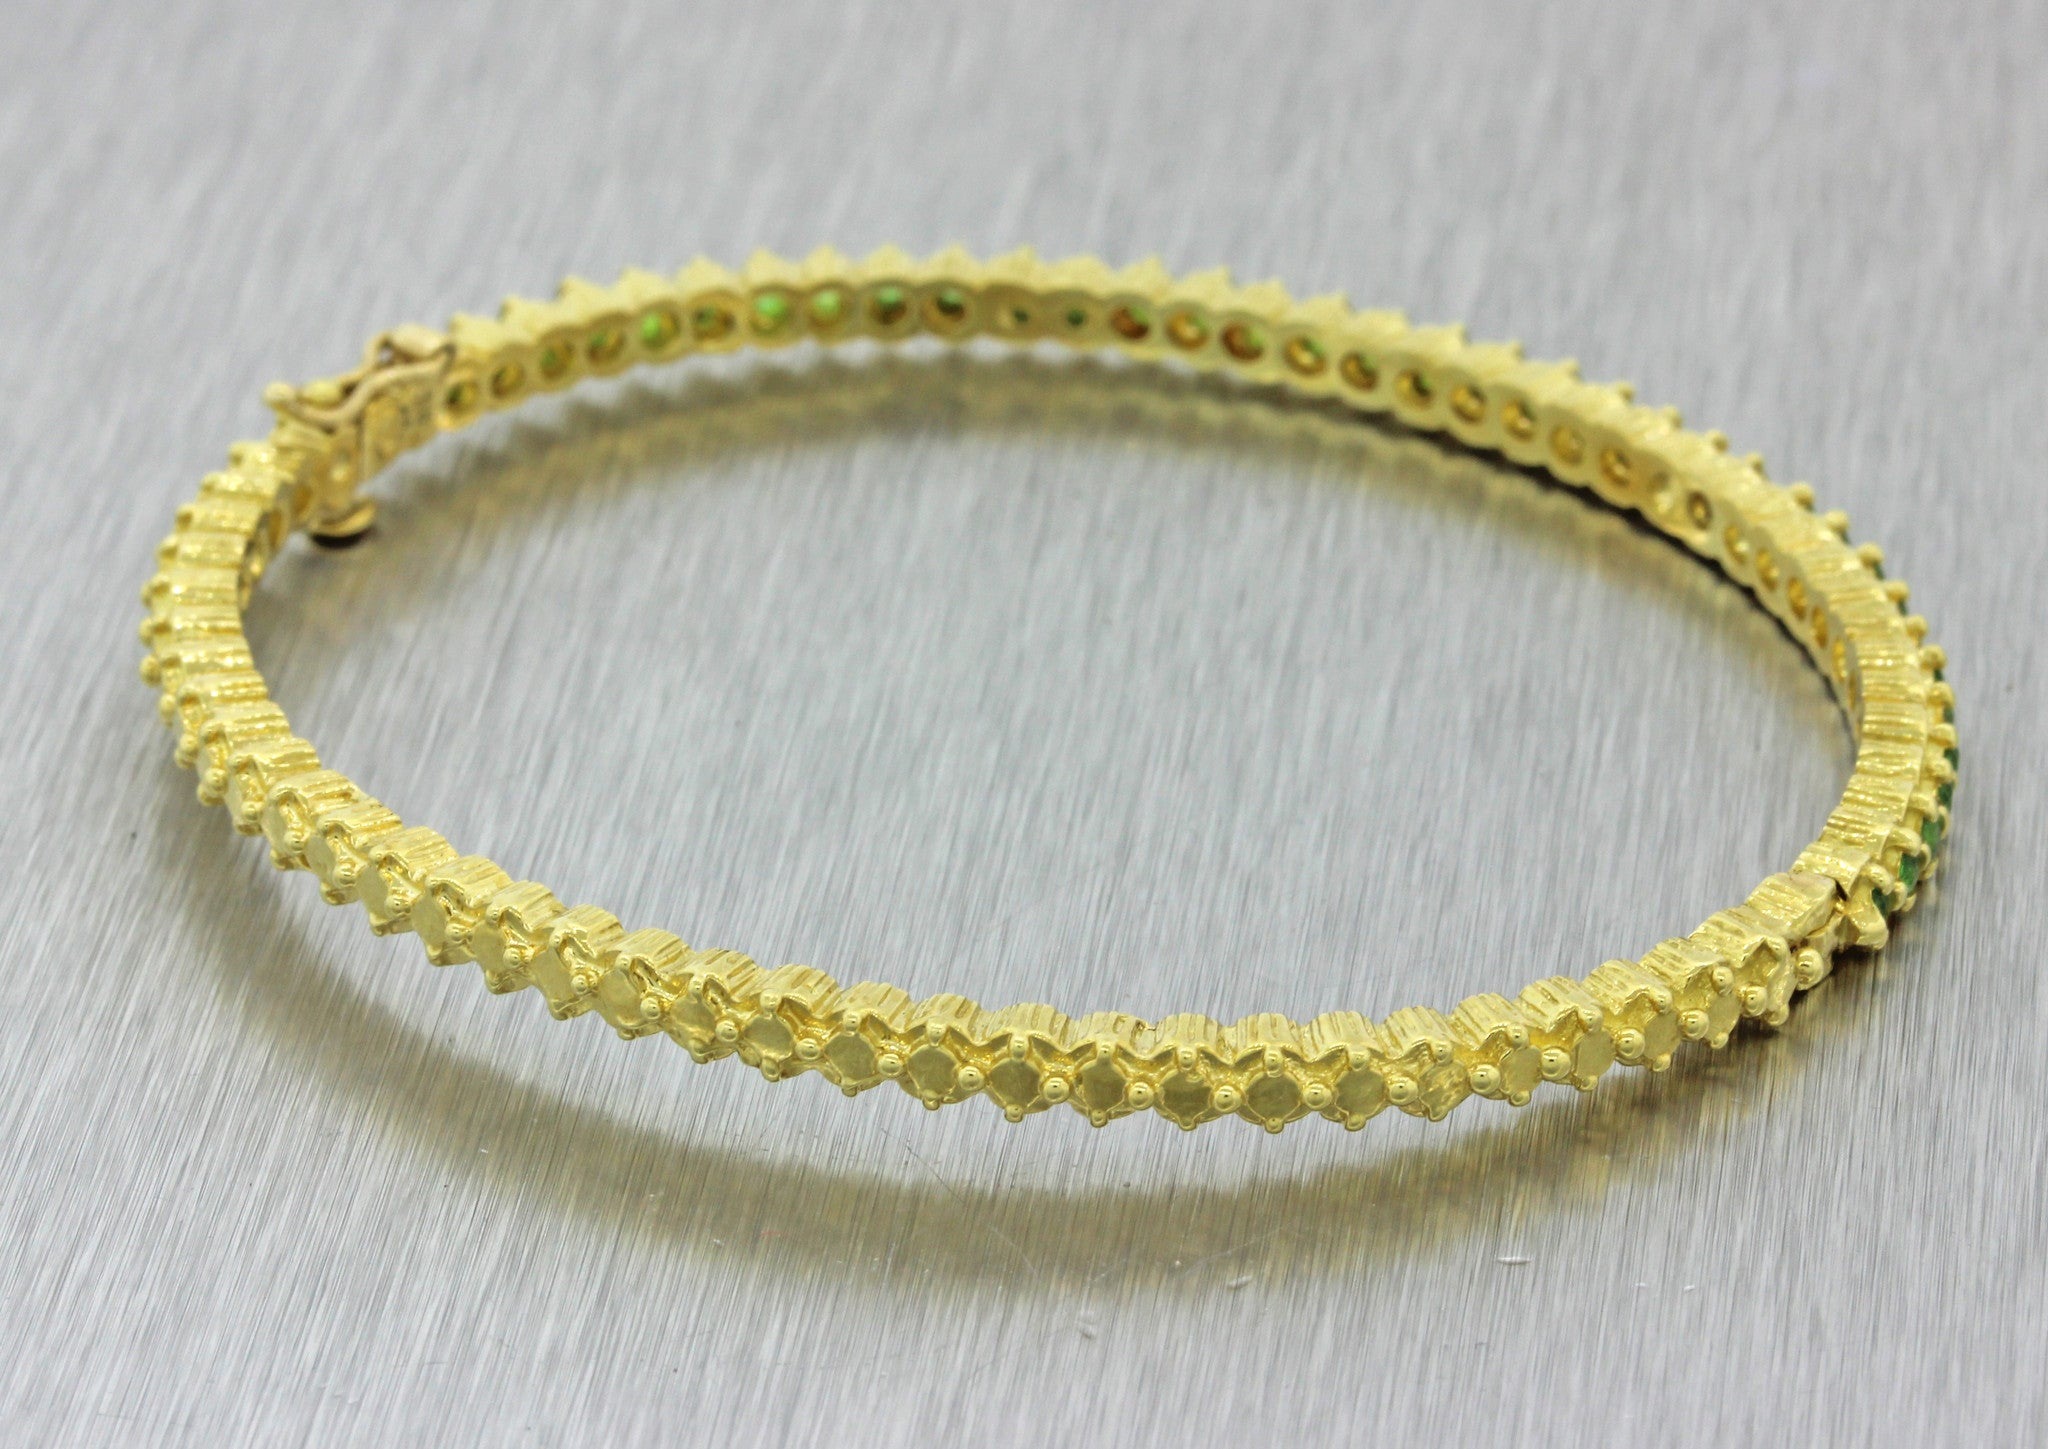 Doris Panos 18k Solid Yellow Gold 1.30ctw Tsavorite 3mm Bangle Bracelet 17.2g